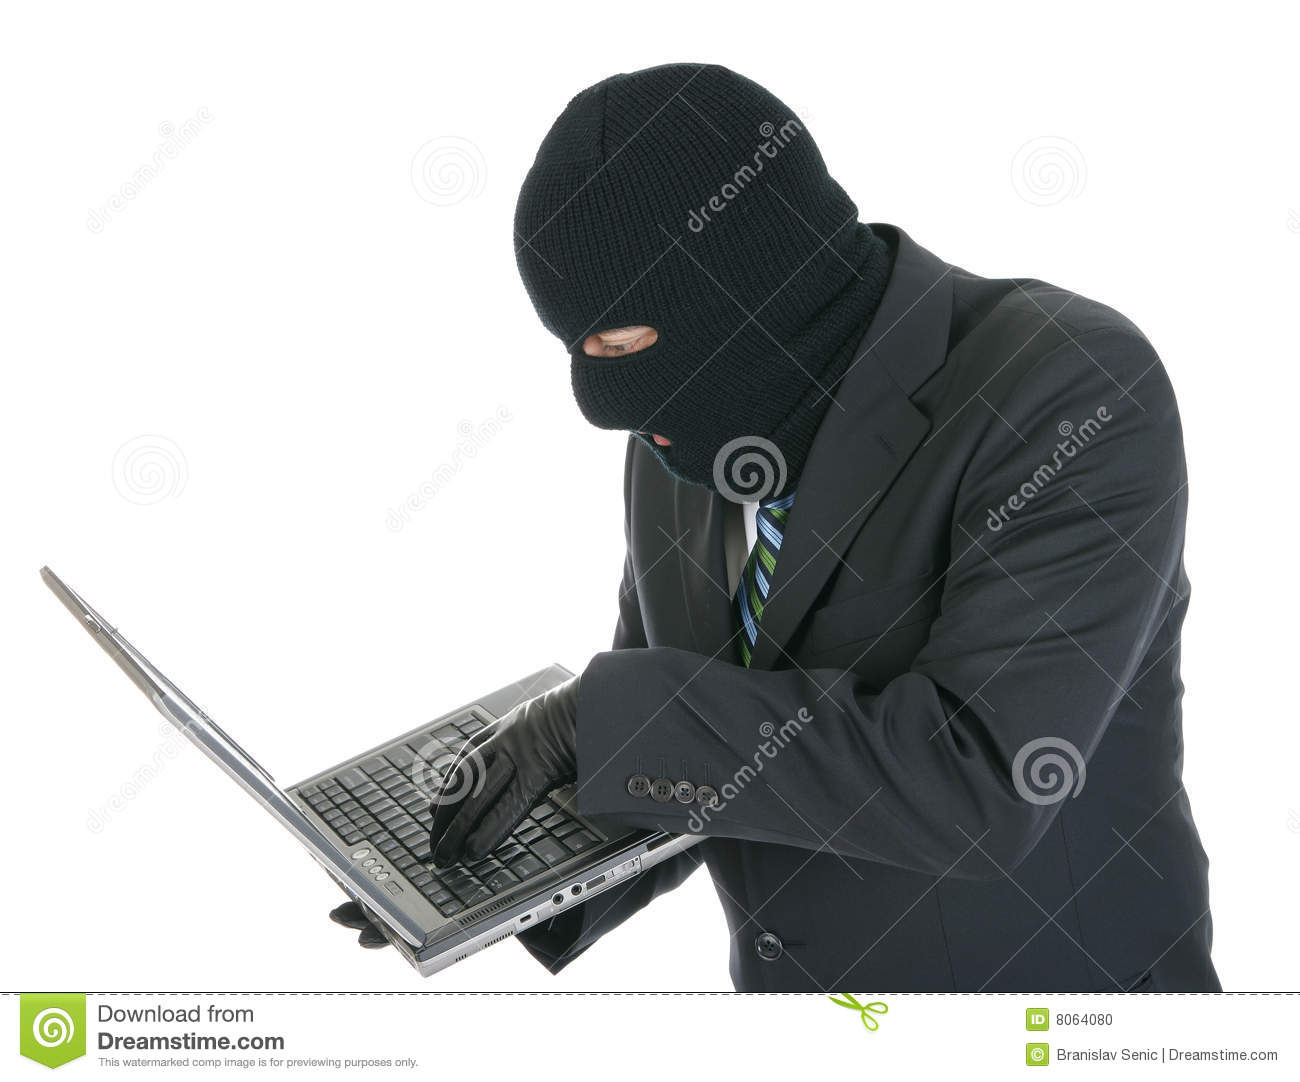 hackers the criminals of the information superhighway Cyberstalking: dangers on the information superhighway by: trudy m gregorie, director of training national center for victims of crime, 2001 although there is no universally accepted definition of cyberstalking, the term is generally used.